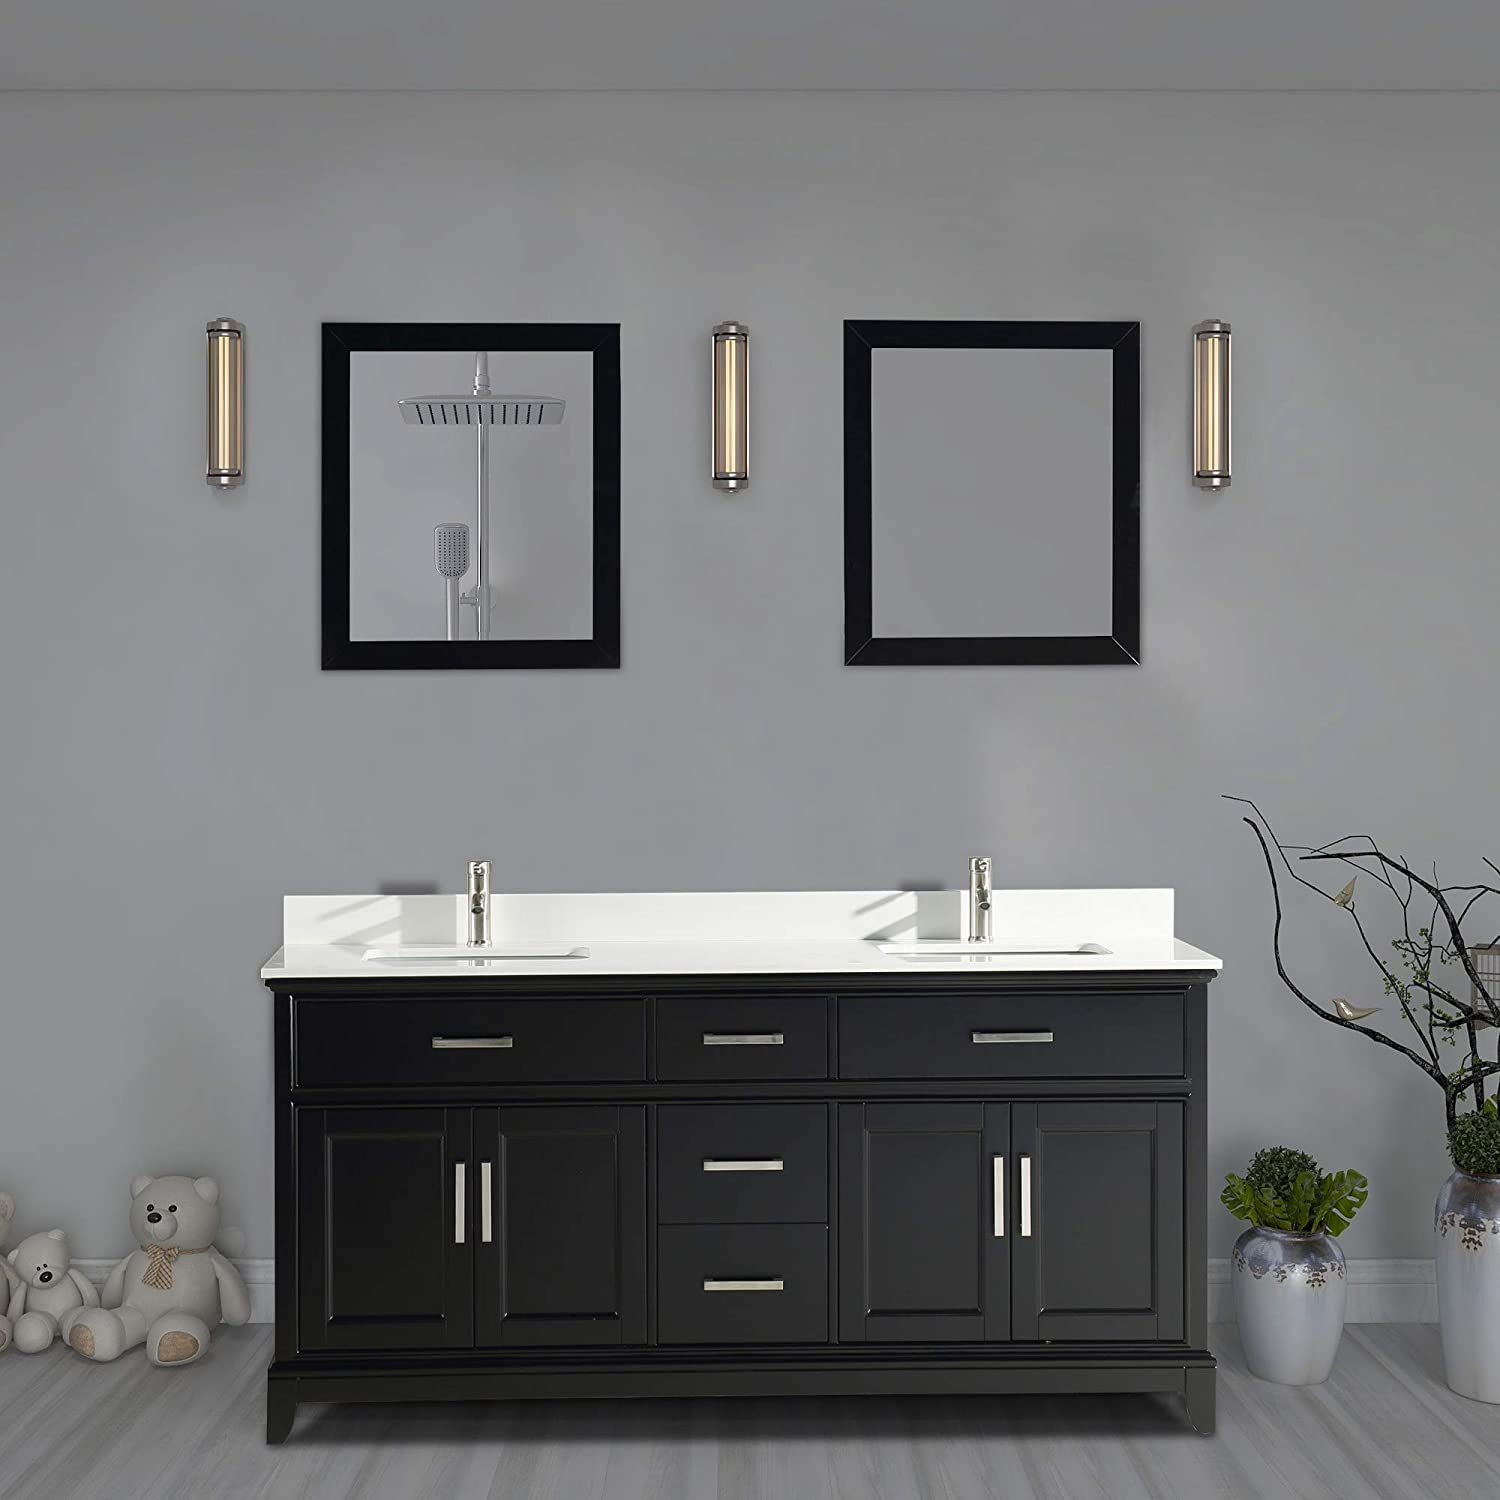 Vanity Art 72 Inch Double Sink Bathroom Vanity Set Super White Phoenix Stone, Soft Closing Doors Undermount Rectangle Sinks with Two Free Mirror – VA1072-DE